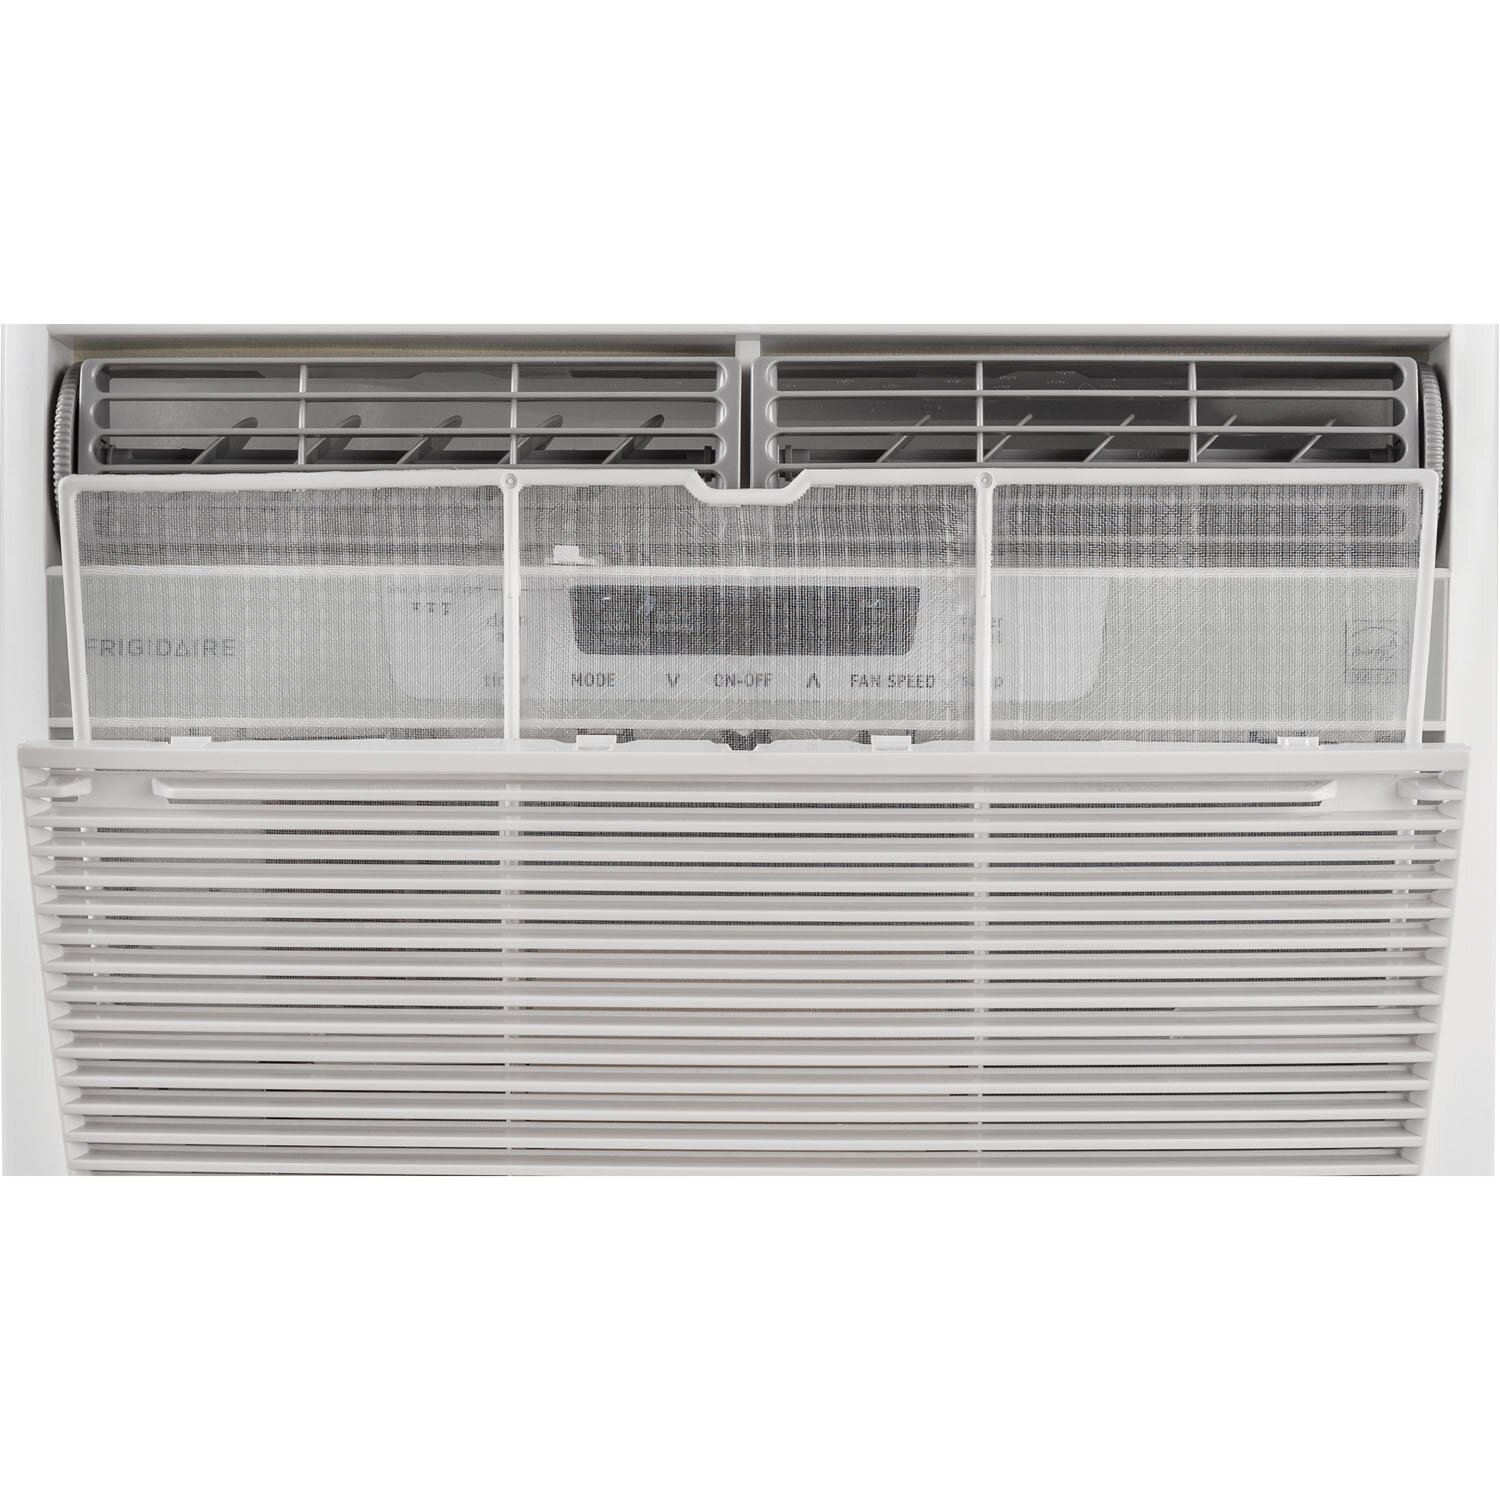 Energy Star Window Compact Air Conditioner with Remote by Frigidaire #5C5851